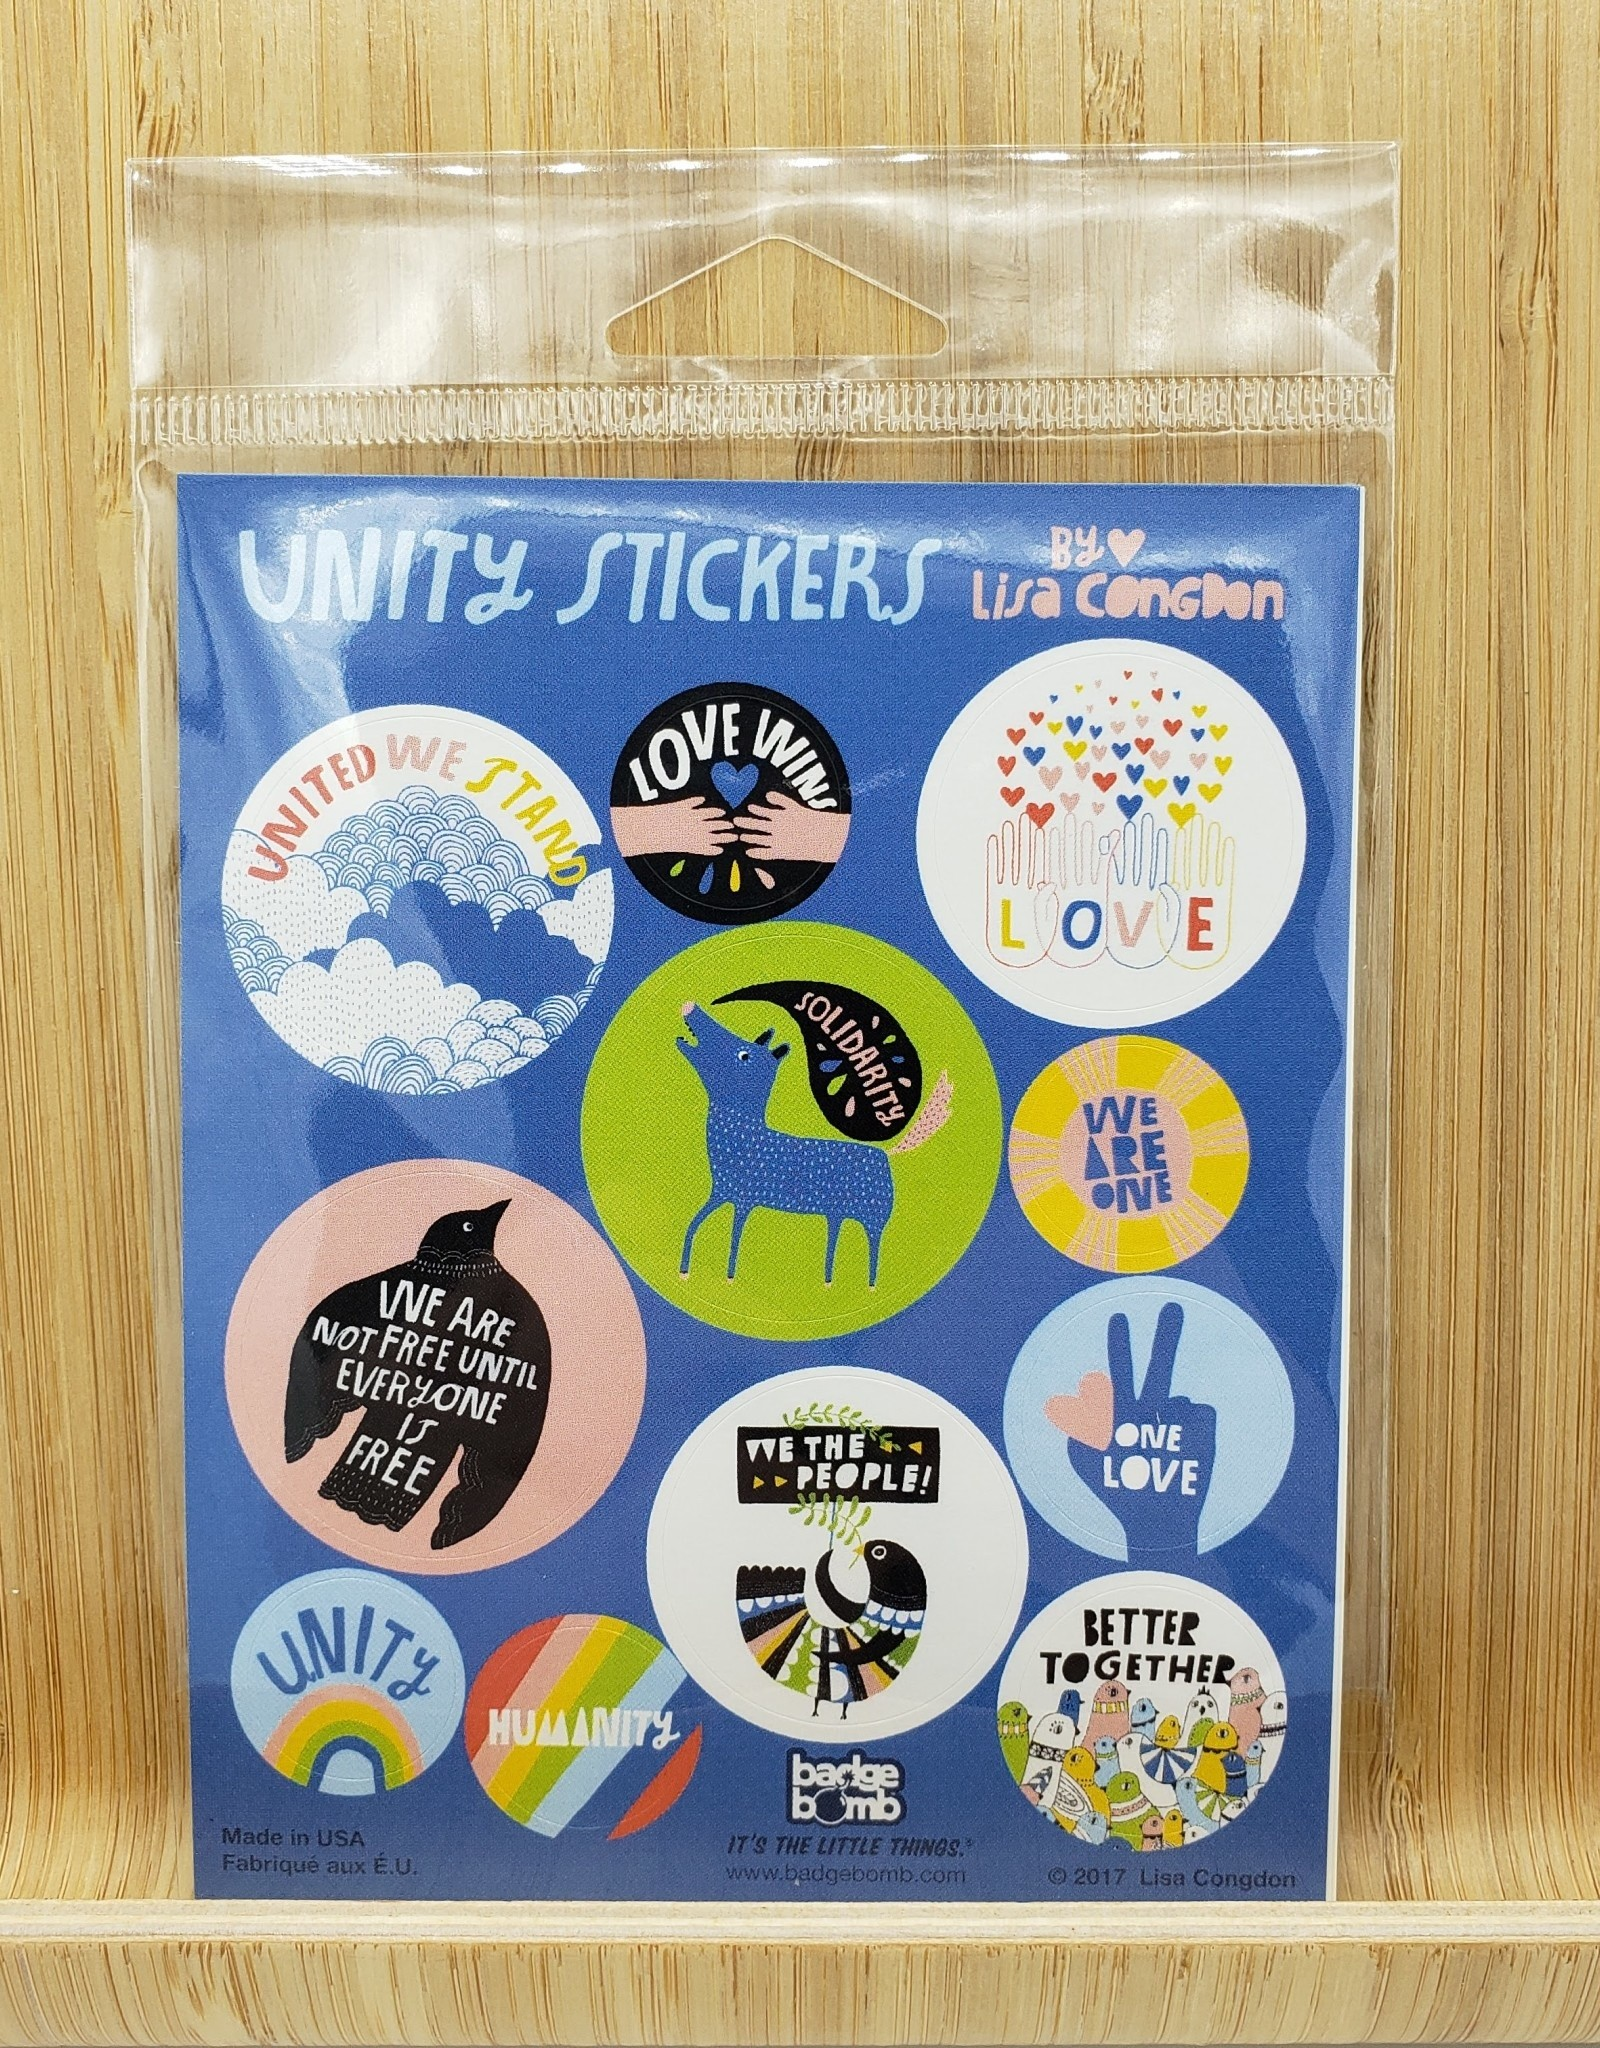 Unity Sticker Sheets -3 per pack by Lisa Congdon